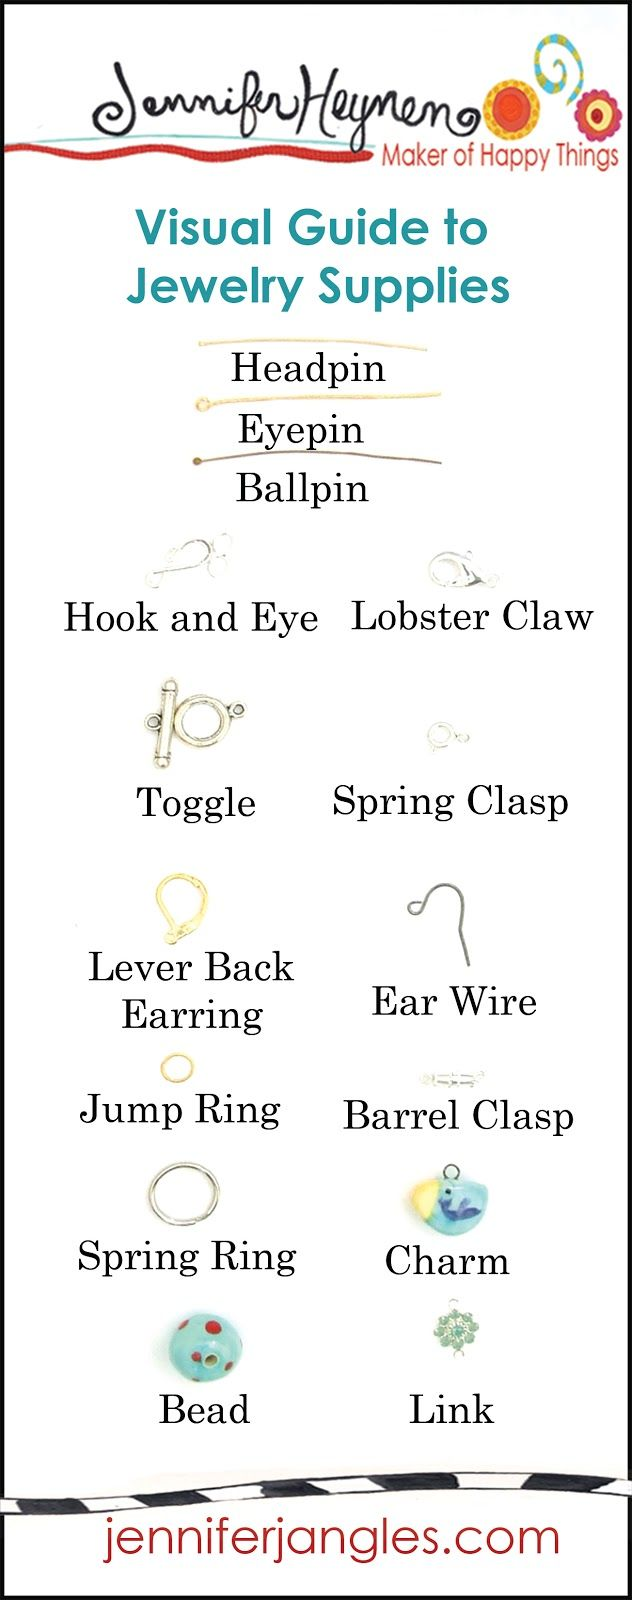 Jennifer Jangles Blog: Jewelry Making Basics